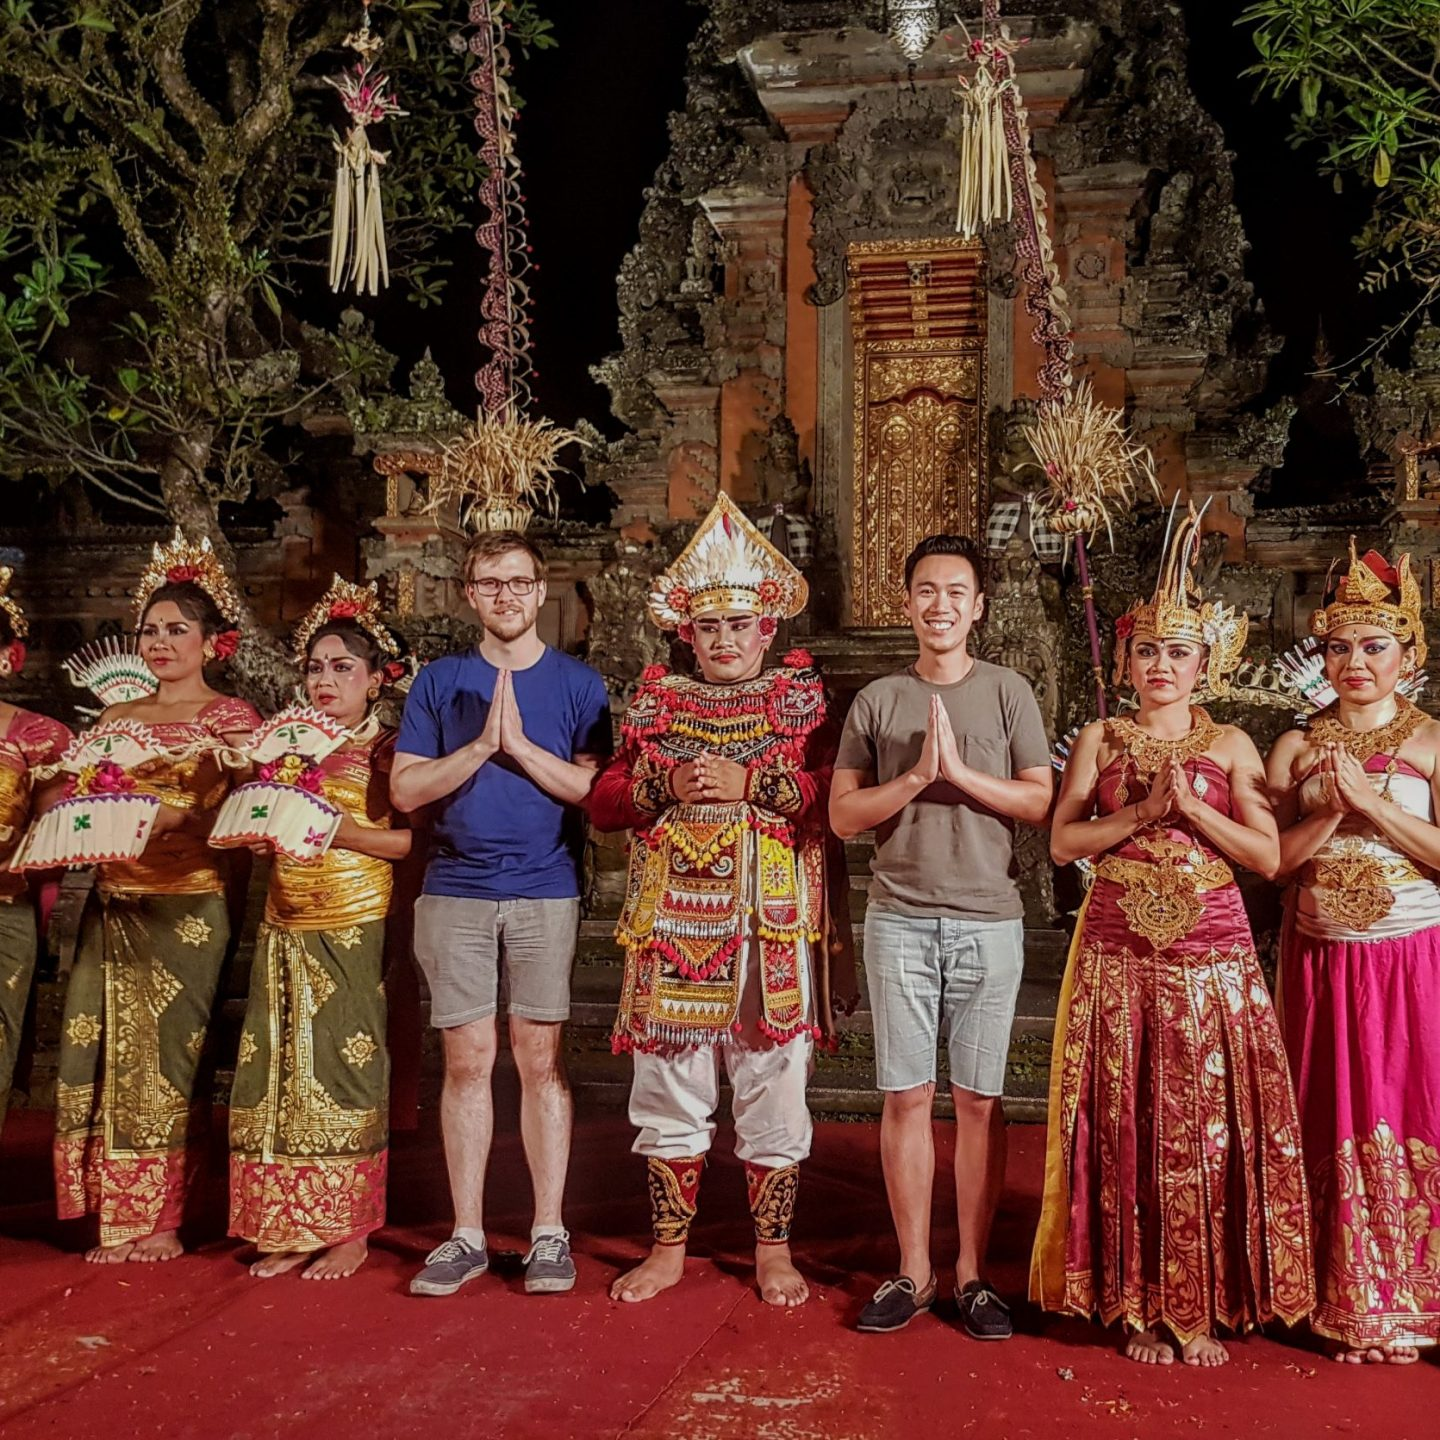 Exploring Ubud and the monkey forest